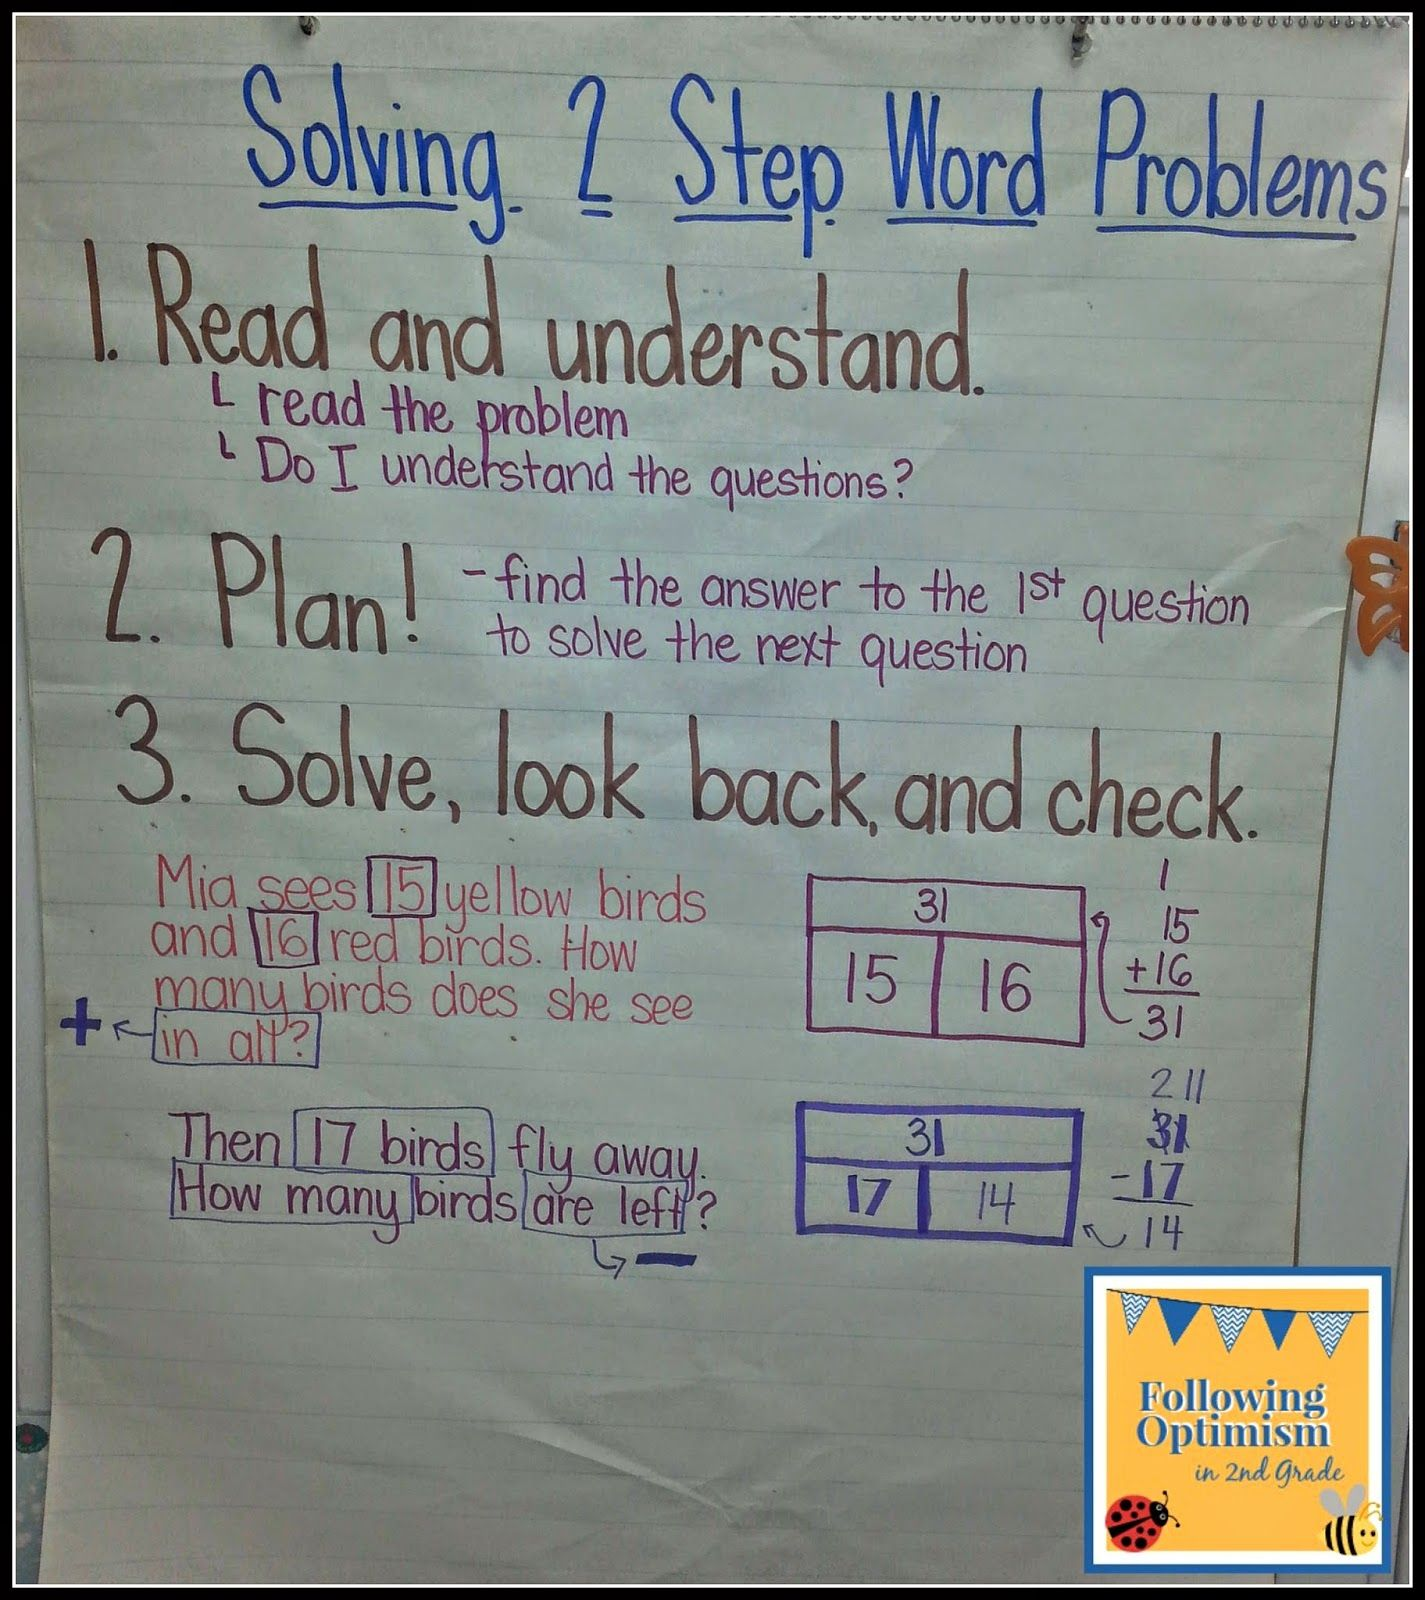 following optimism in 2nd grade two step word problems [ 1425 x 1600 Pixel ]